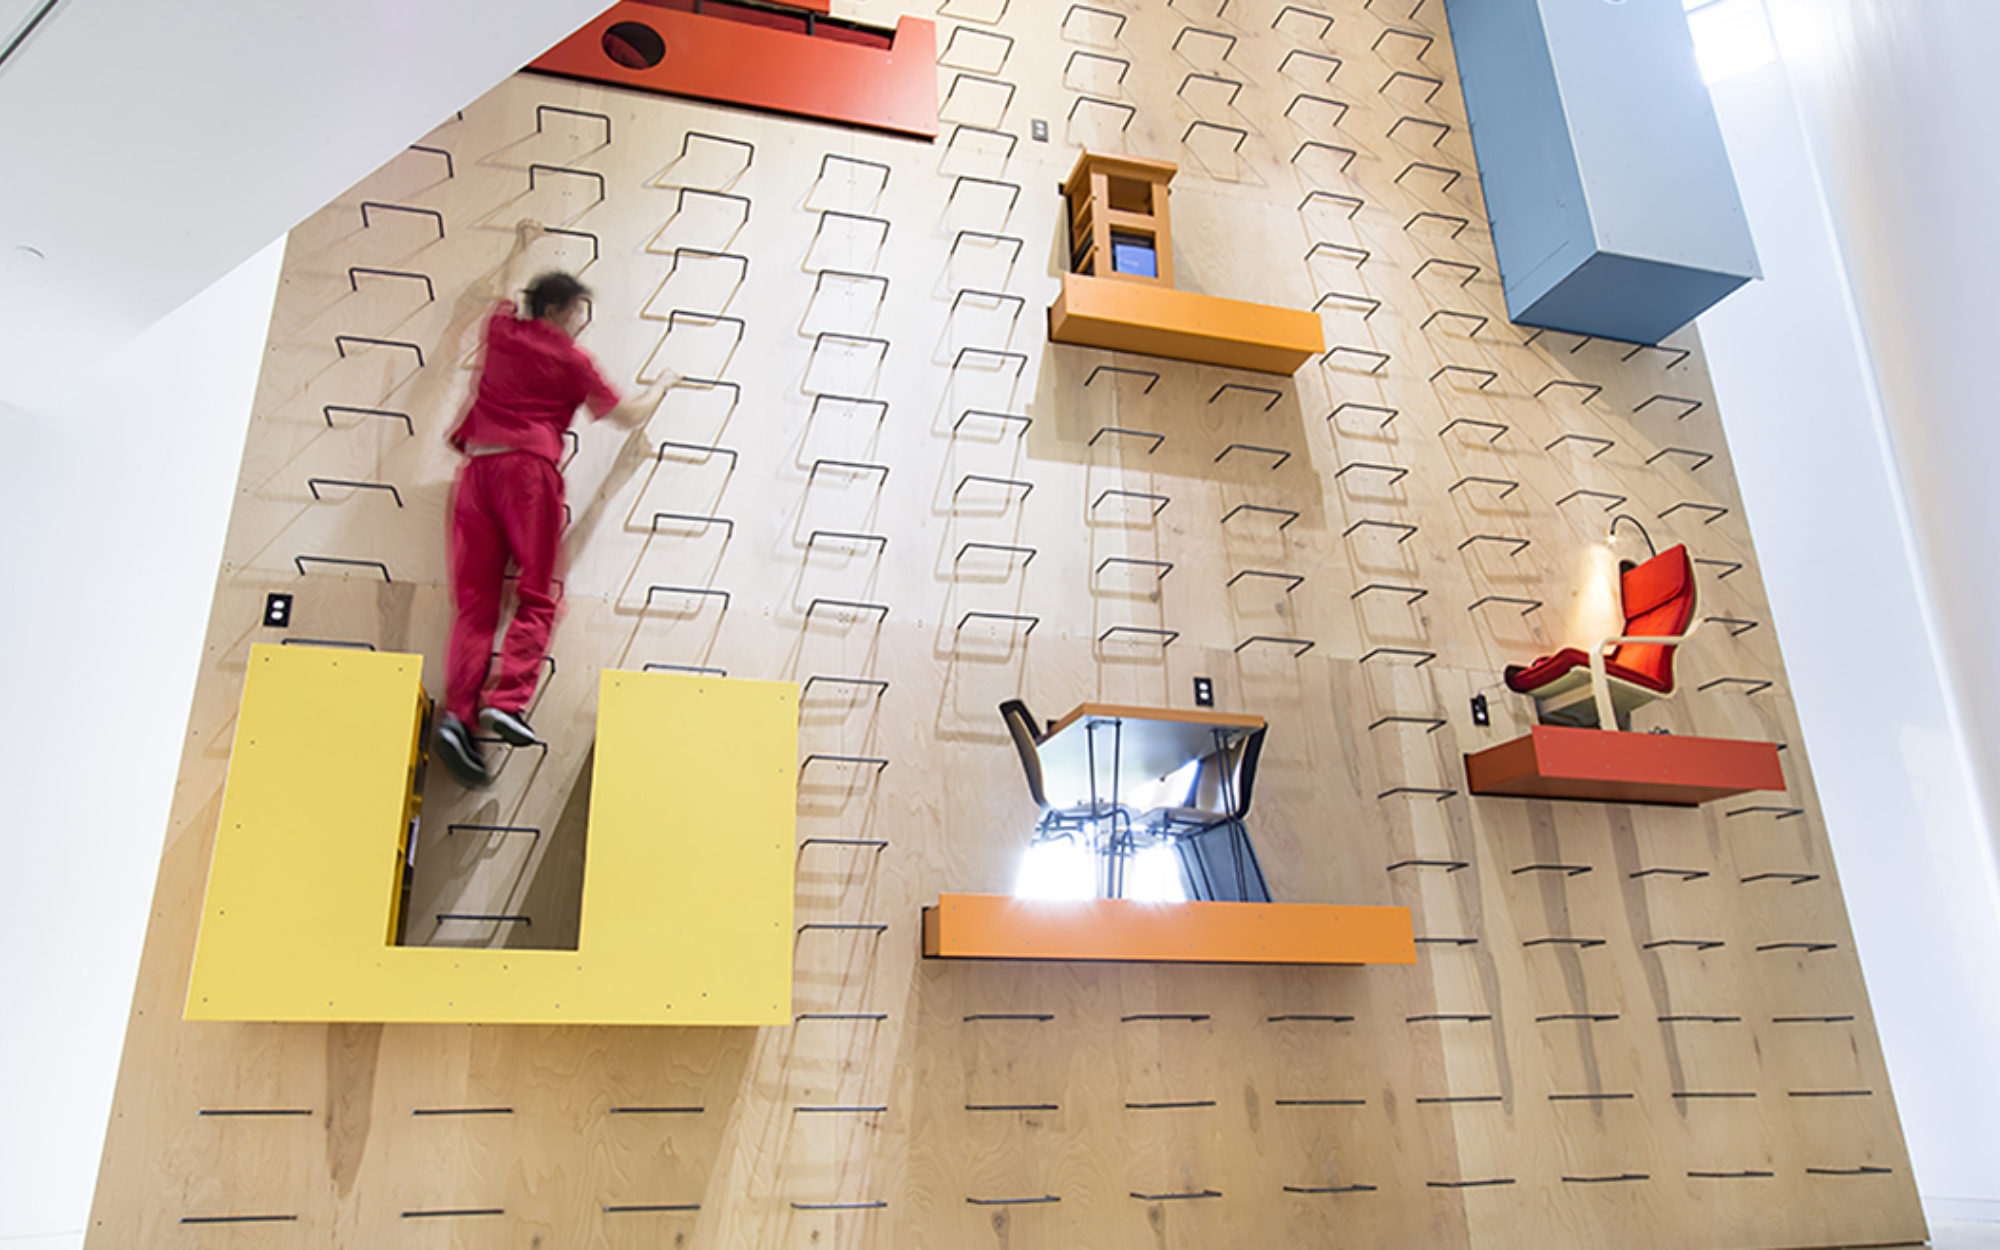 Person scales a large wall installation